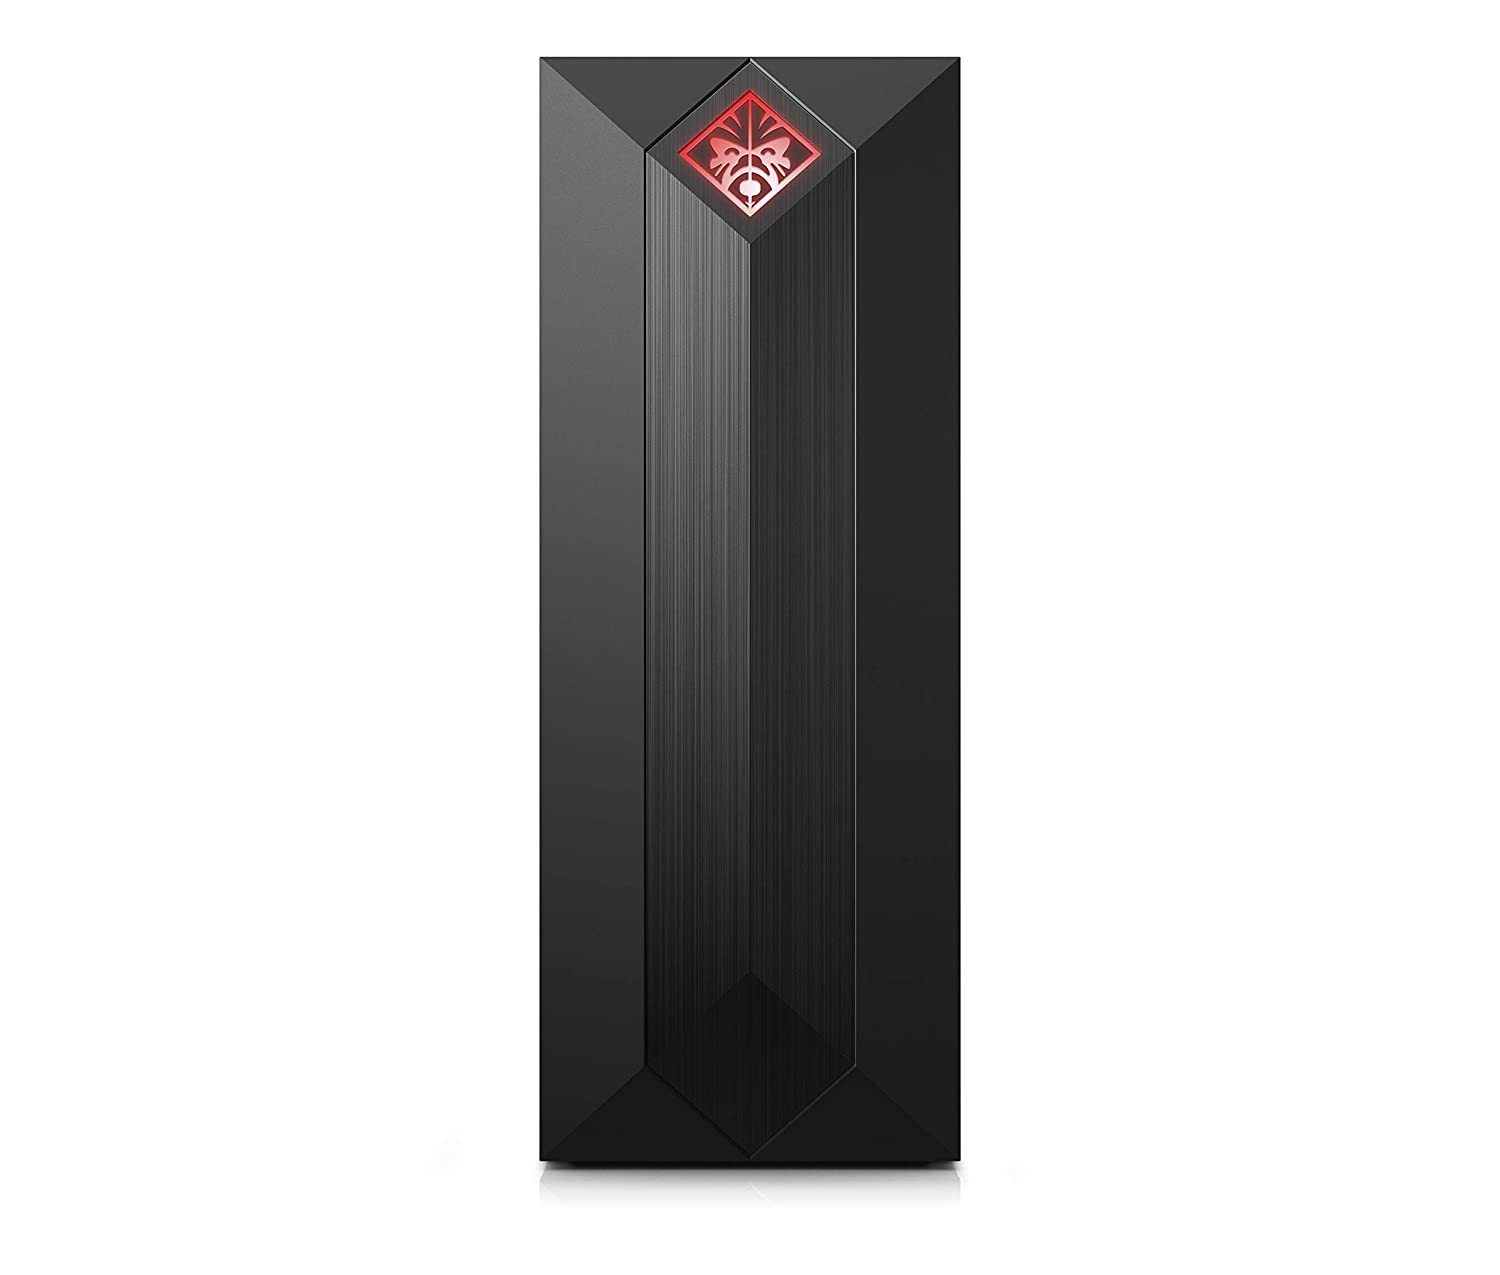 Amazon com: OMEN by HP Obelisk Gaming Desktop Computer